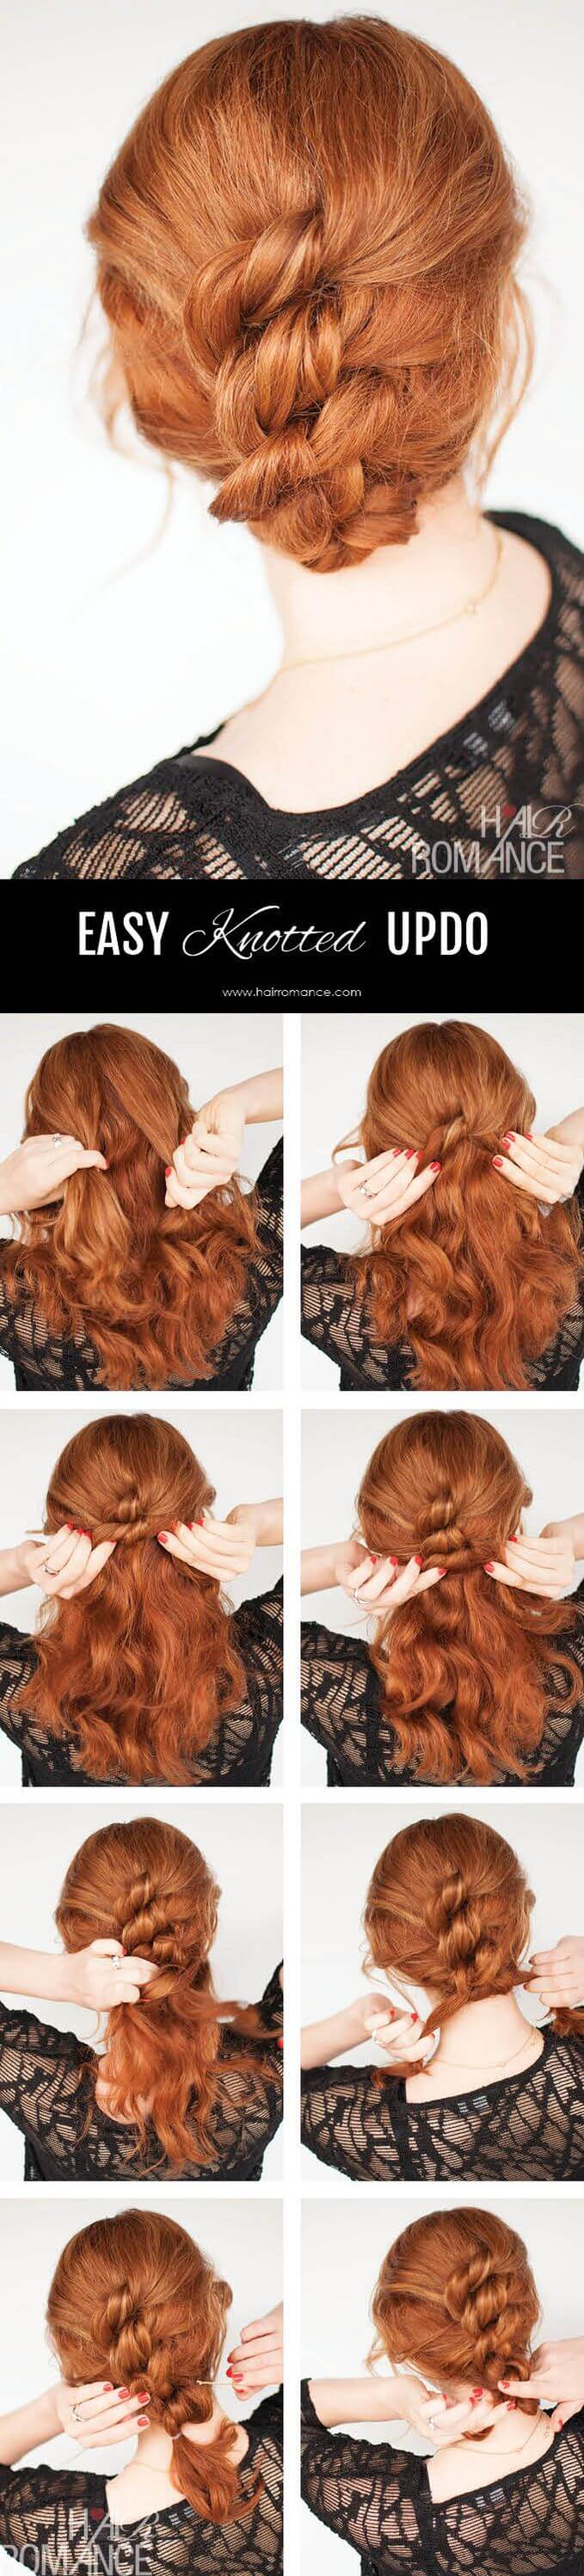 The knotted ponytail is easy to do with a hairbrush, few bobby pins and elastic bands